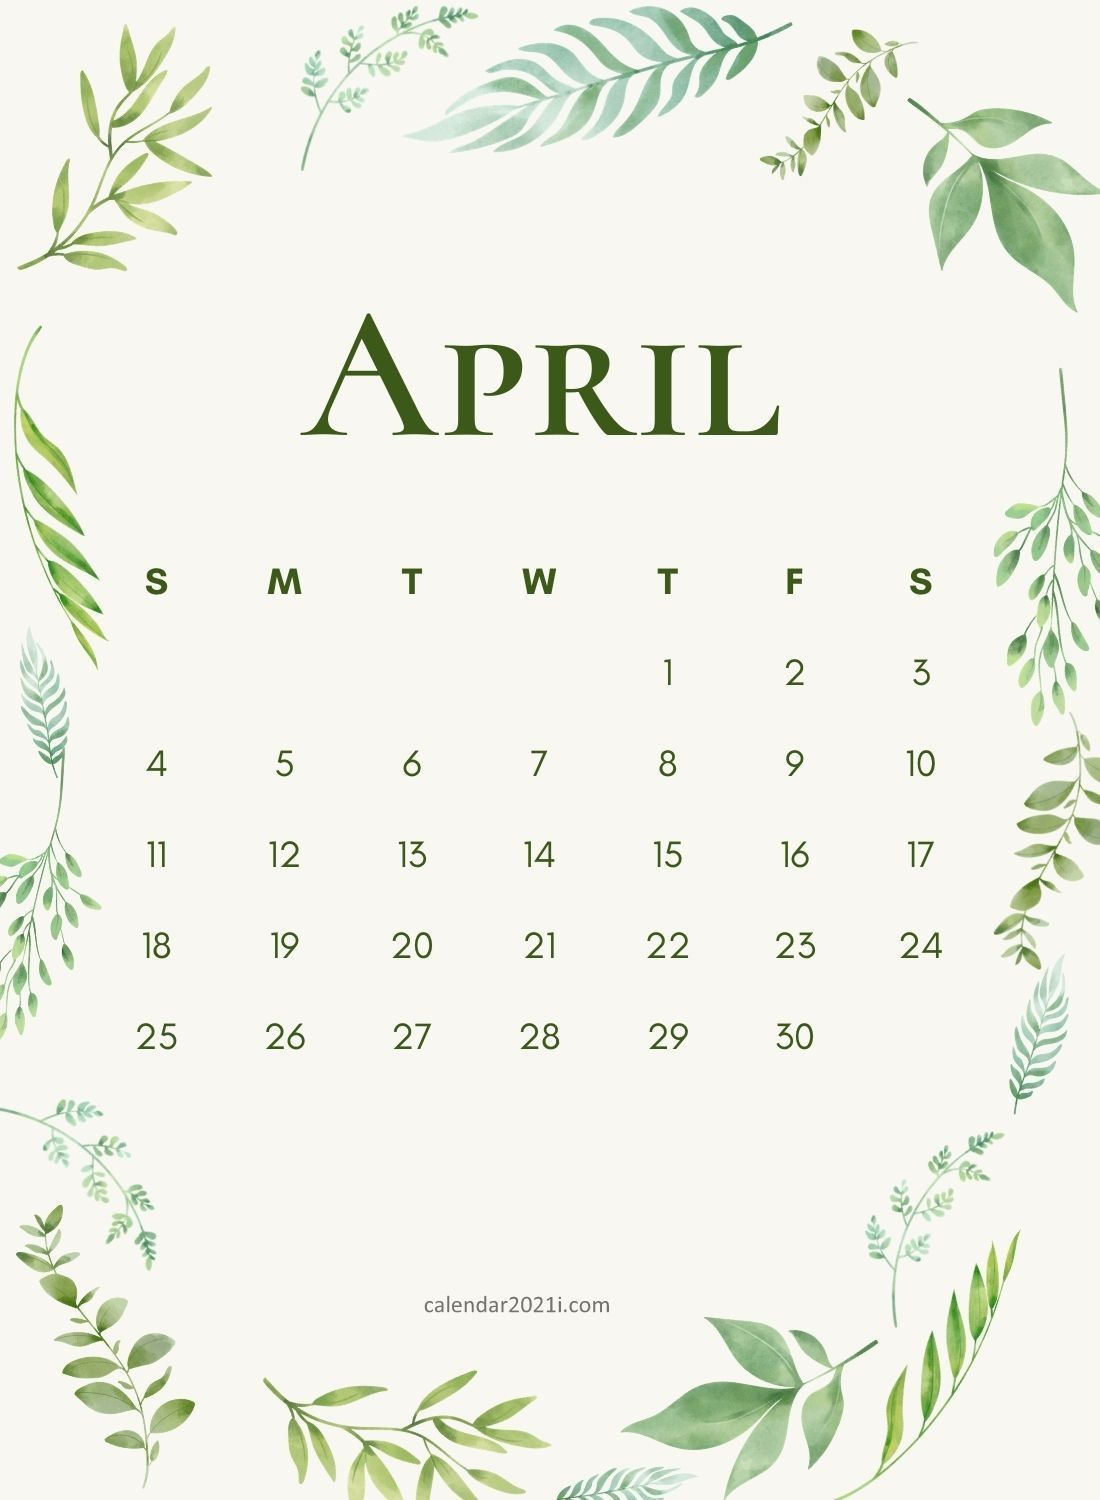 April 2021 Wall Calendar printable template download for House and 1100x1500